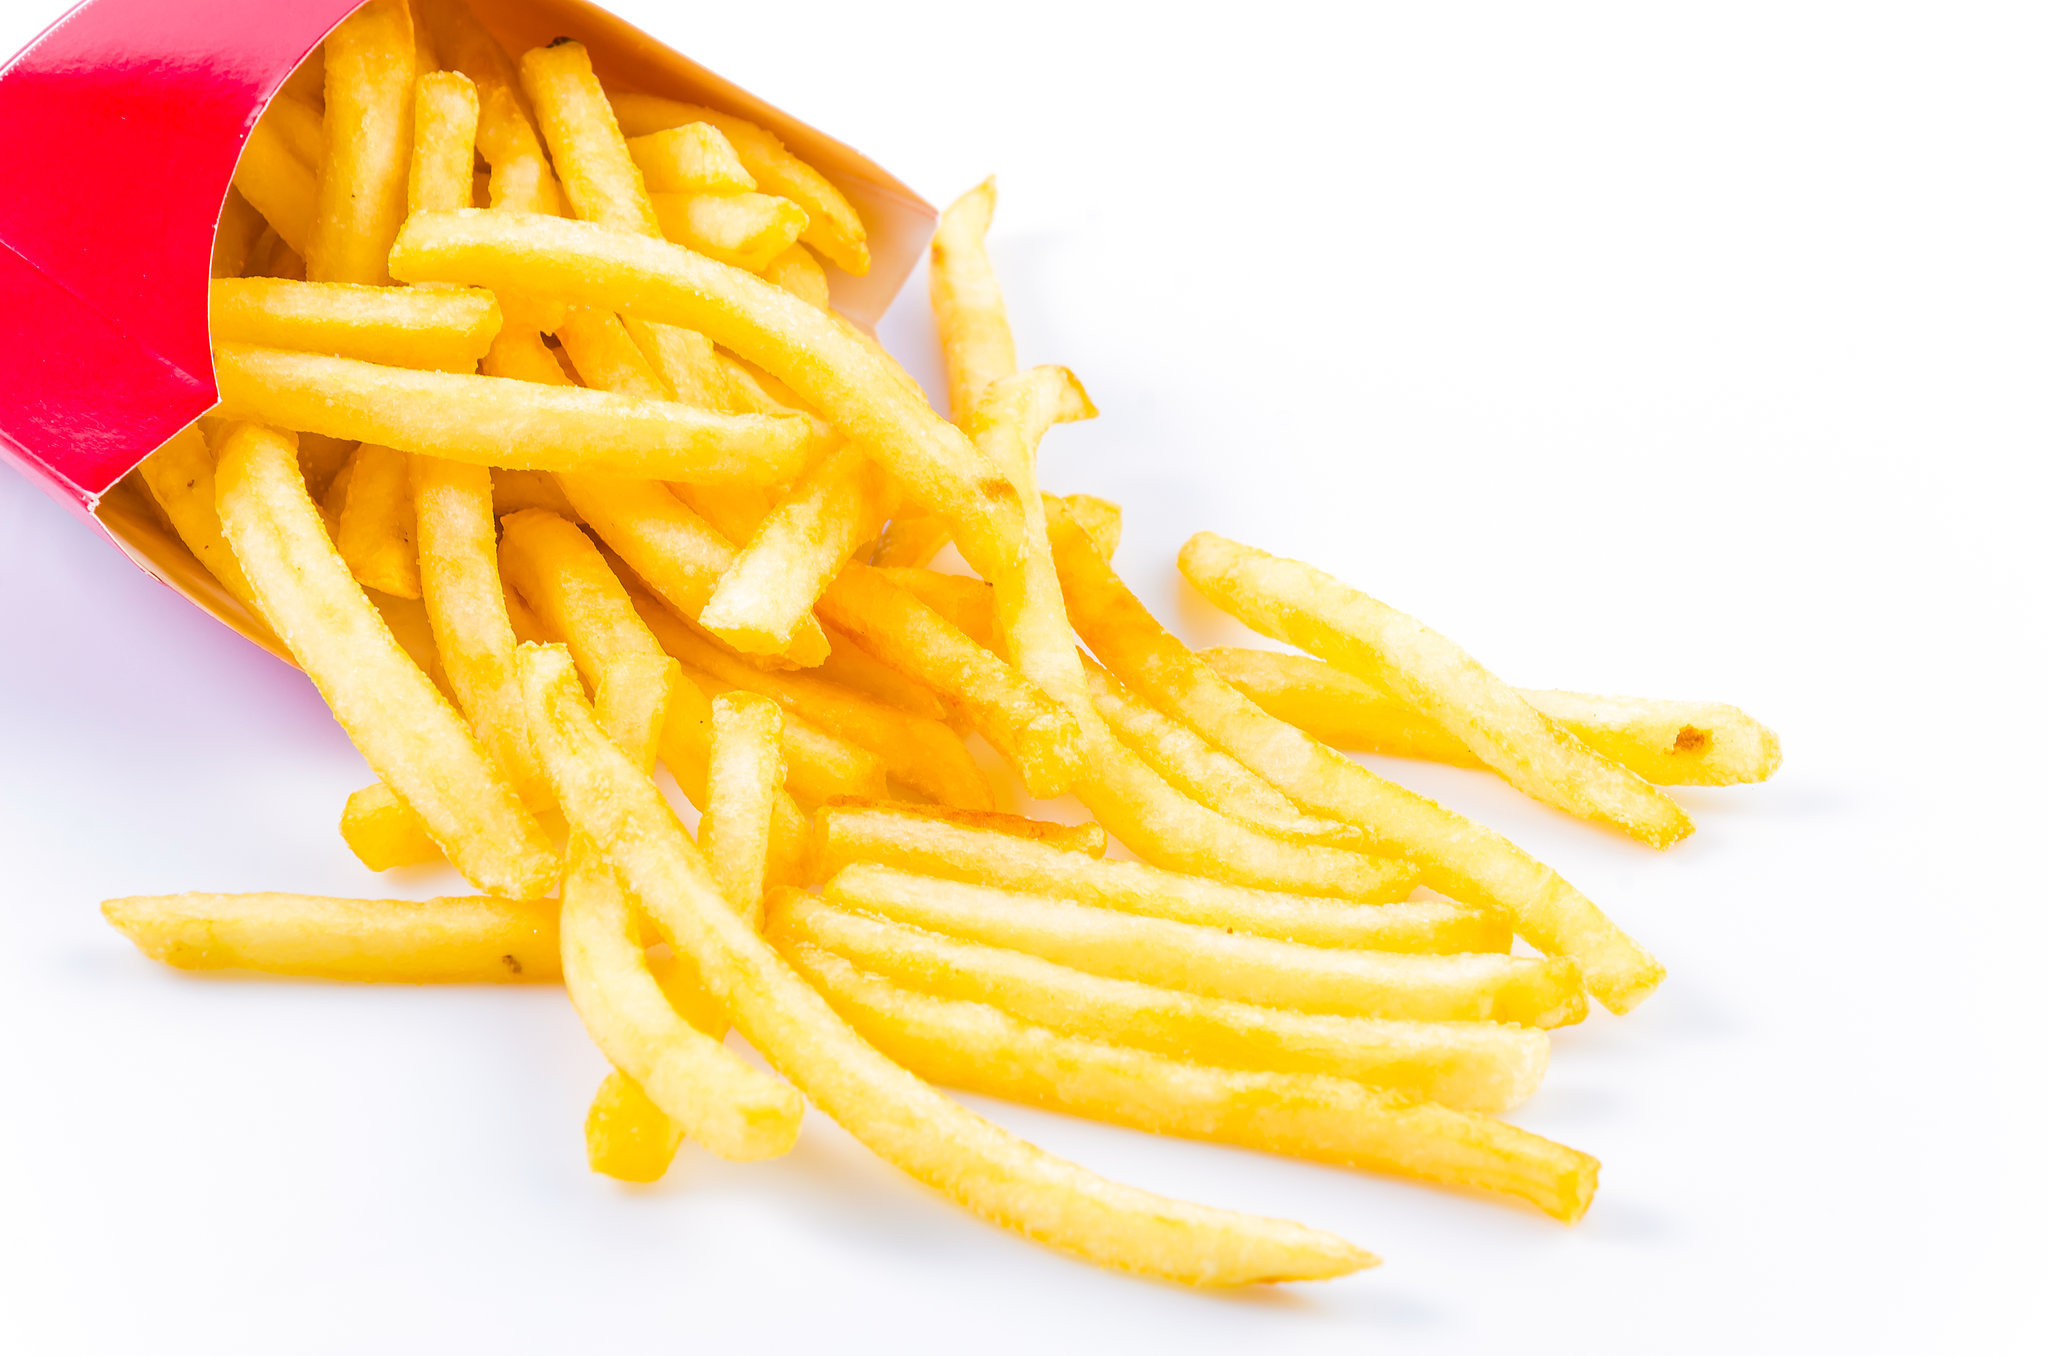 how to make french fries like mcdonalds